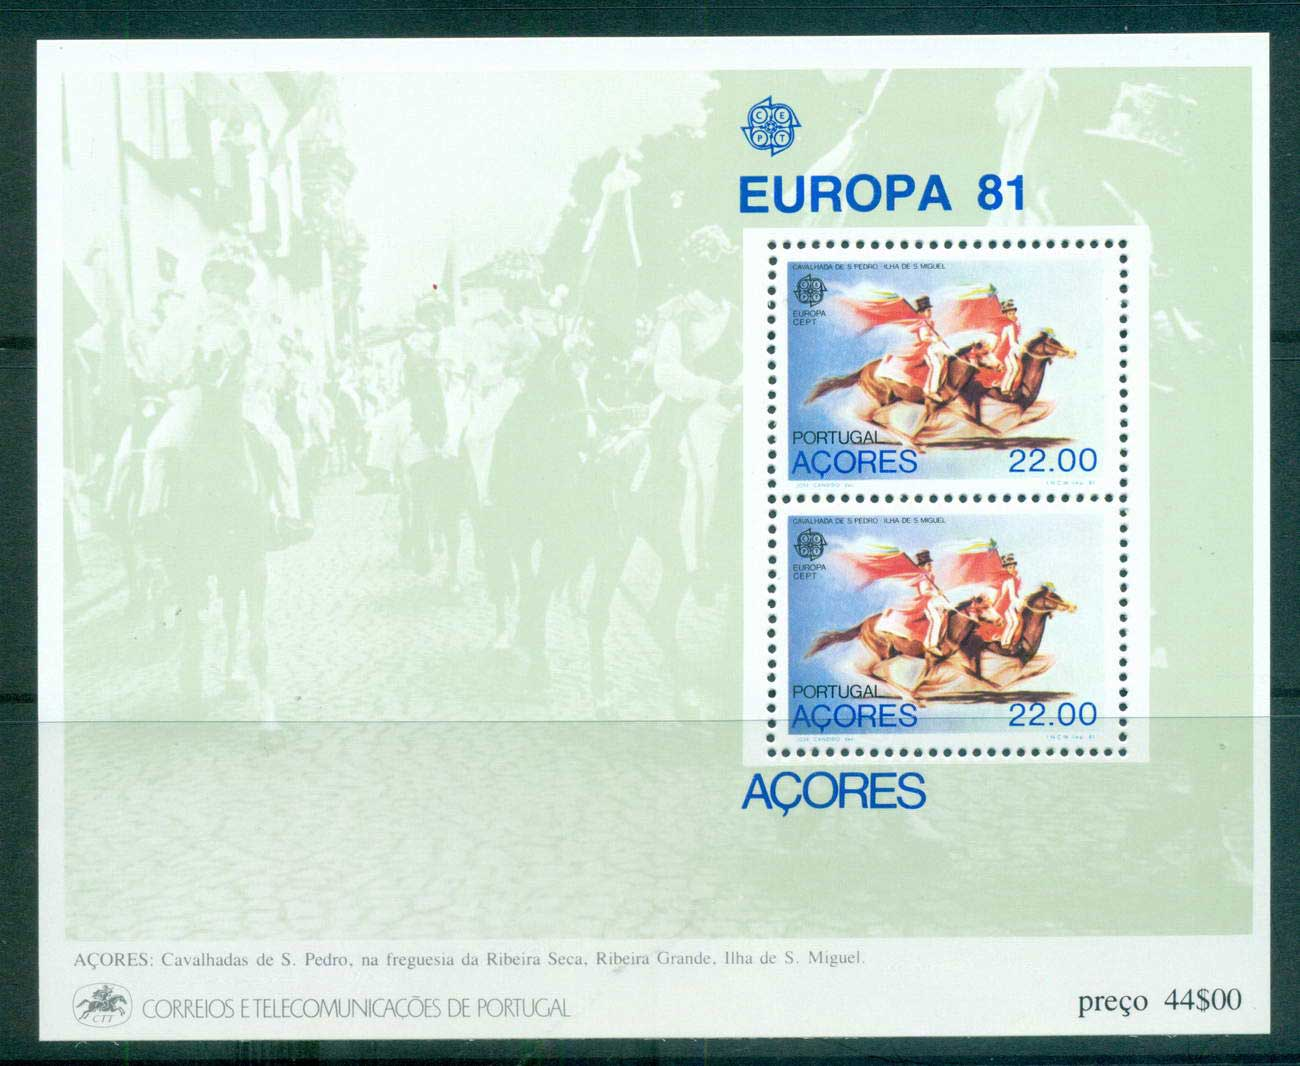 Azores 1981 Europa, Folklore MS MUH lot65813